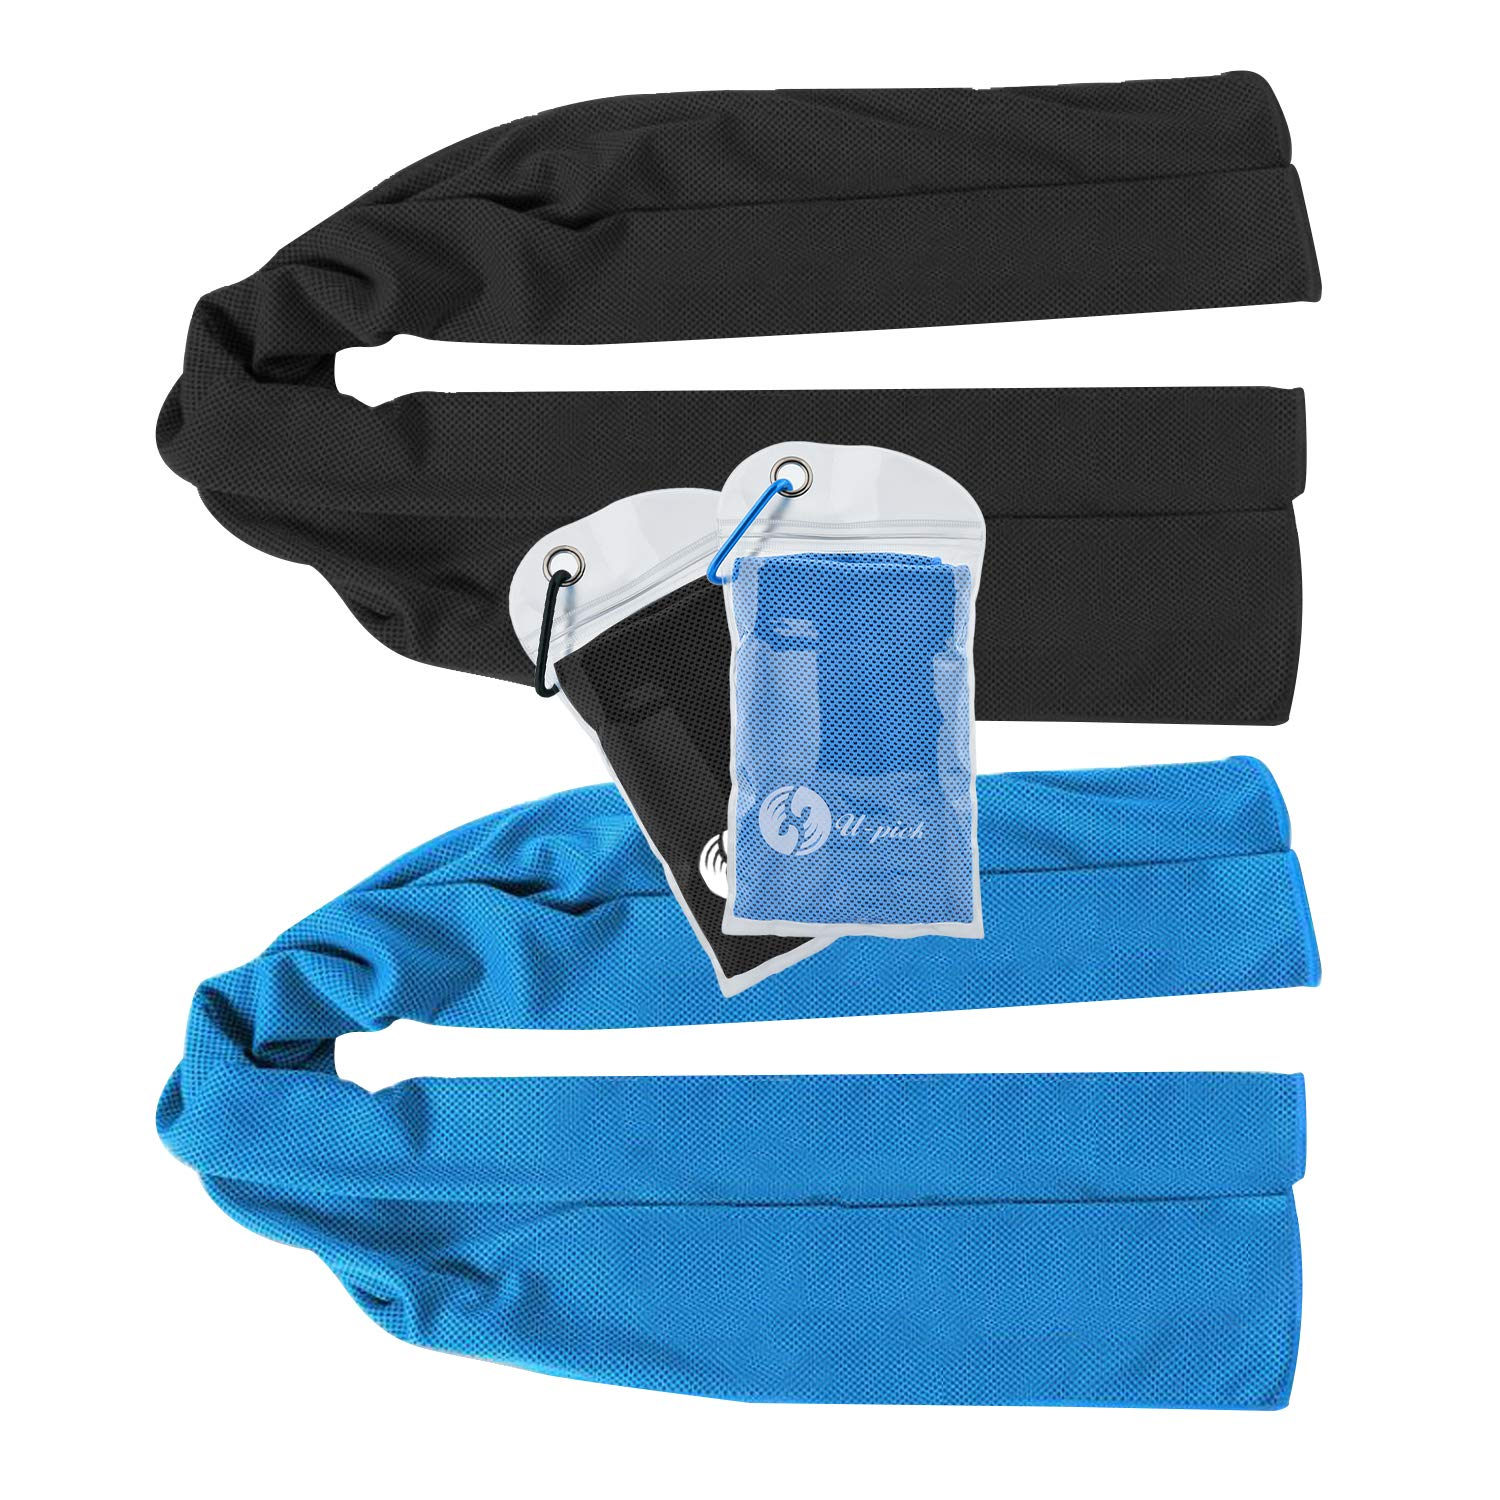 U-Pick Cooling Towel for Gym